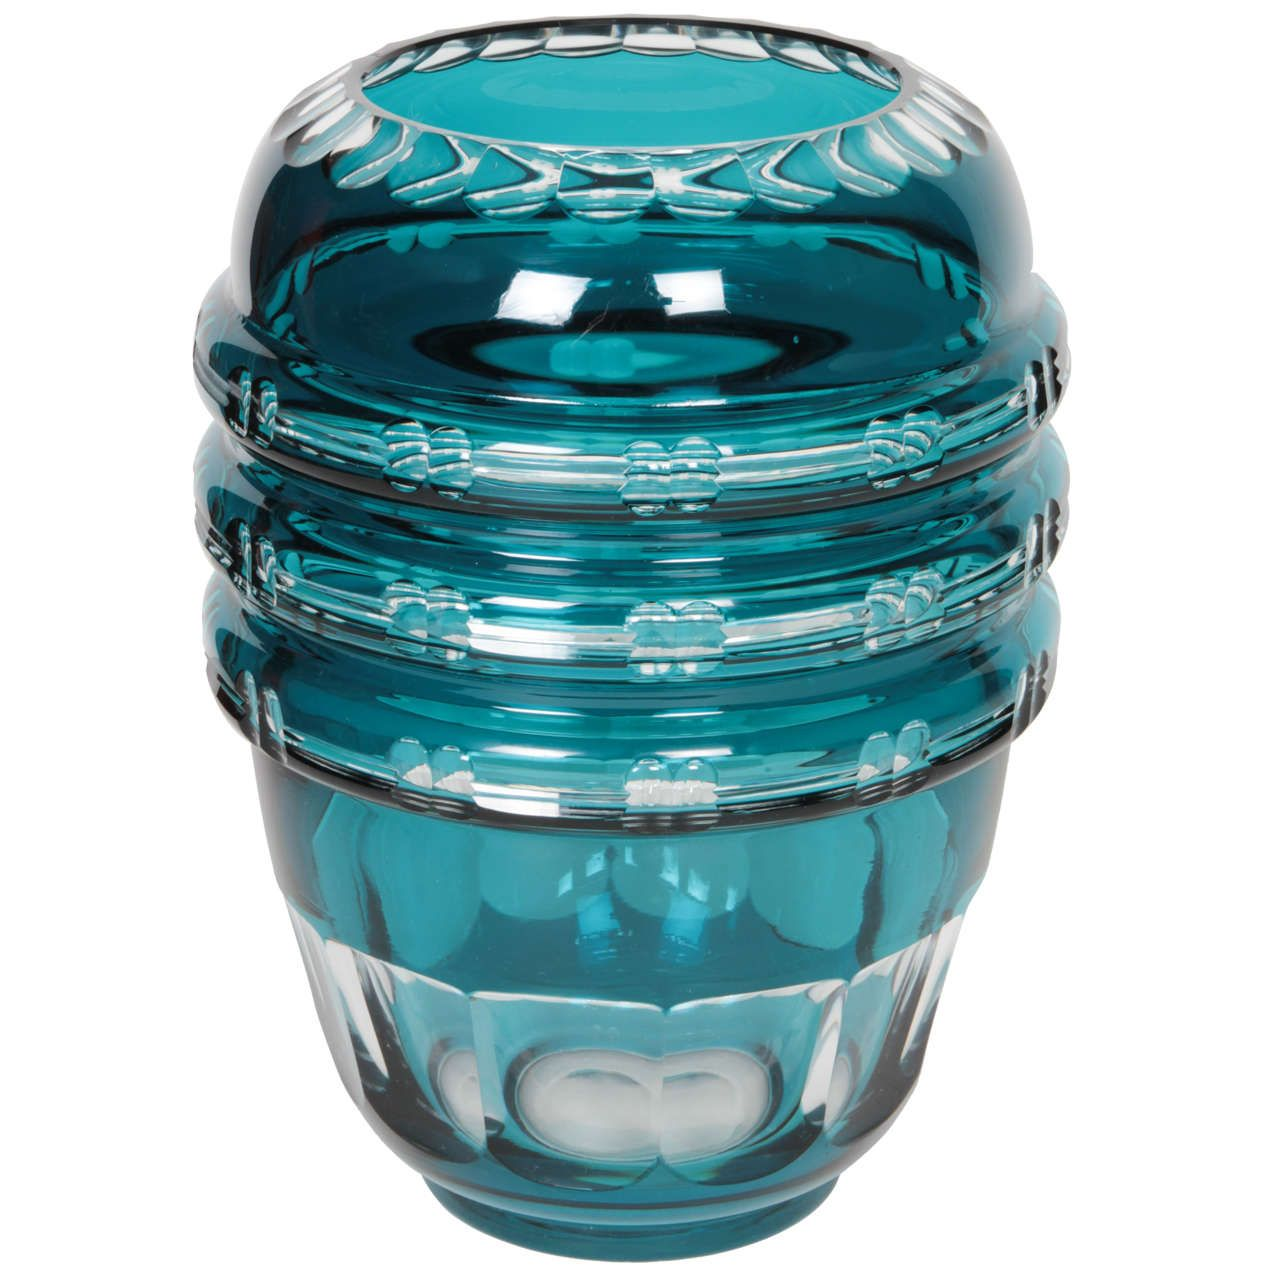 Turquoise Cut Crystal Vase by Val Saint Lambert | From a unique collection of antique and modern vases at http://www.1stdibs.com/furniture/dining-entertaining/vases/